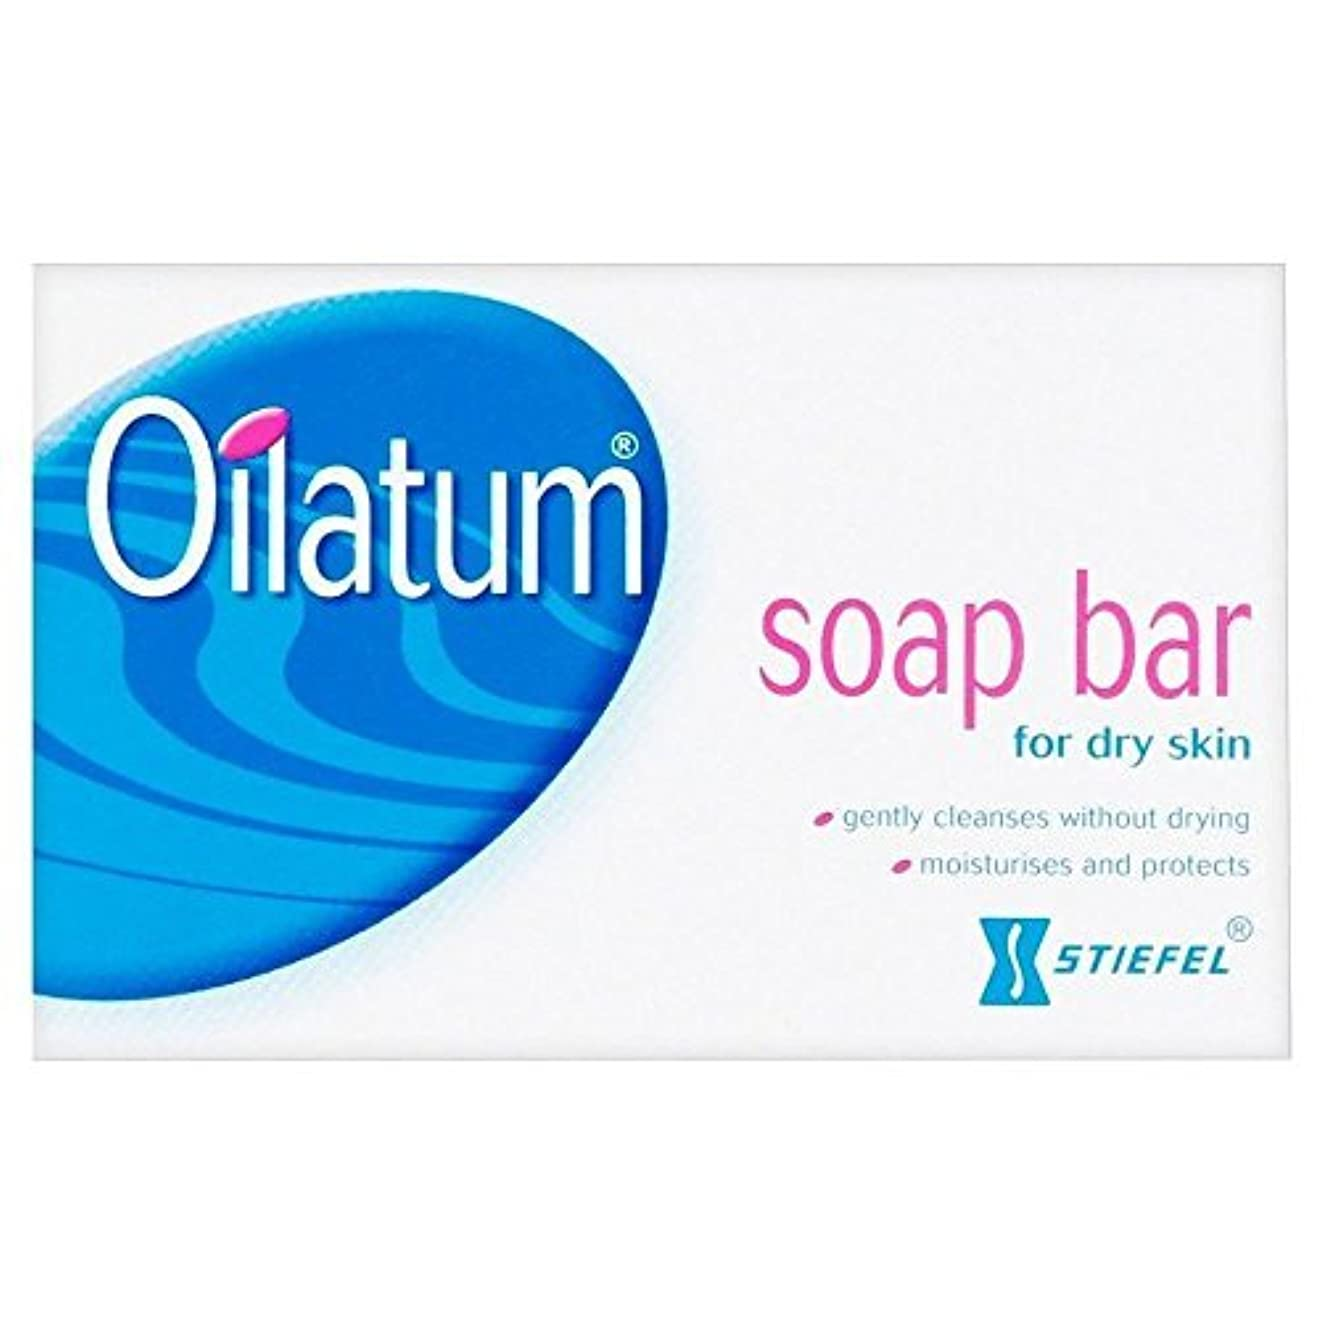 Oilatum Soap Bar (100g) - Pack of 2 by Oilatum [並行輸入品]